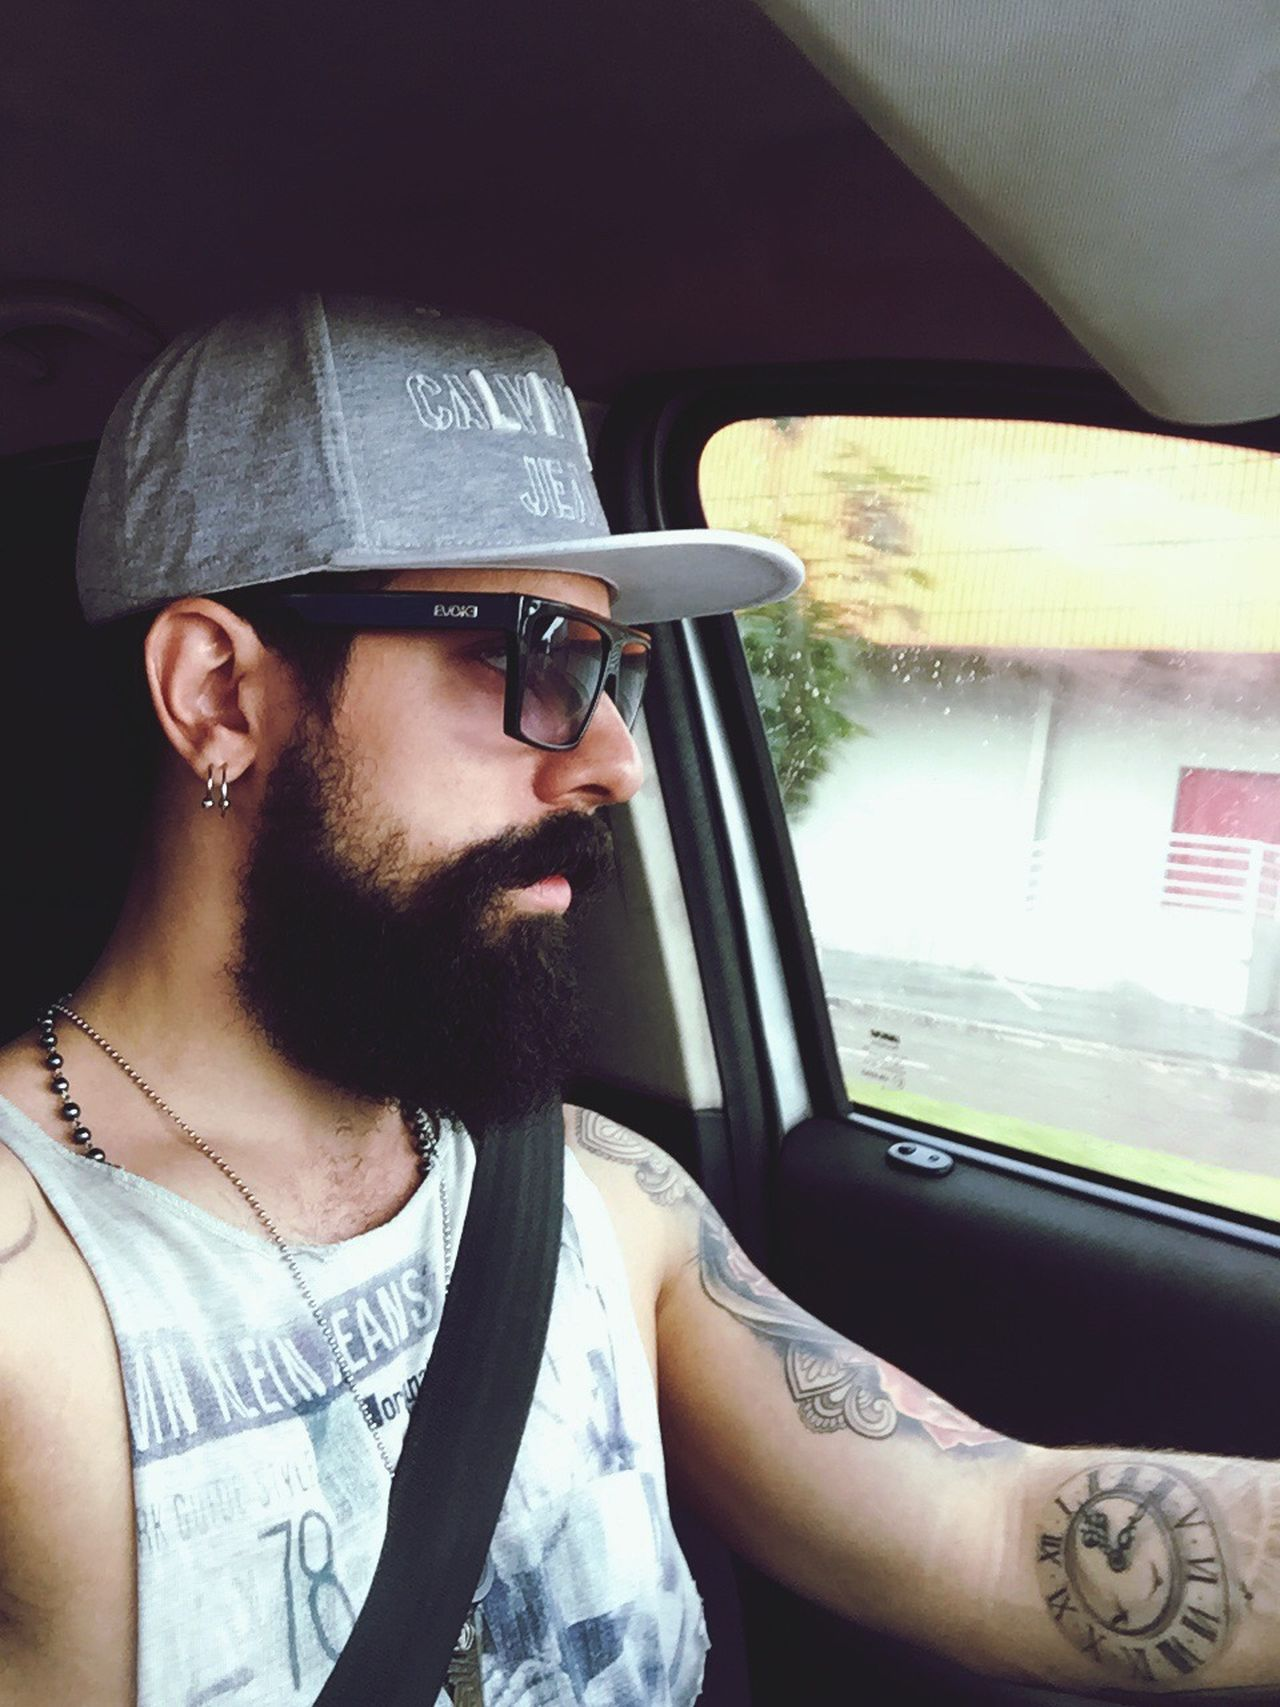 Let's drive 😎 Selfie ✌ Tattoo Hello World Eye4photography  Selfie ♥ Self Portrait Selfie EyeEm Gallery Self Day Eyemphotography Lifestyles Relaxing Self Potrait Selfportrait Tattoos Beard Adult